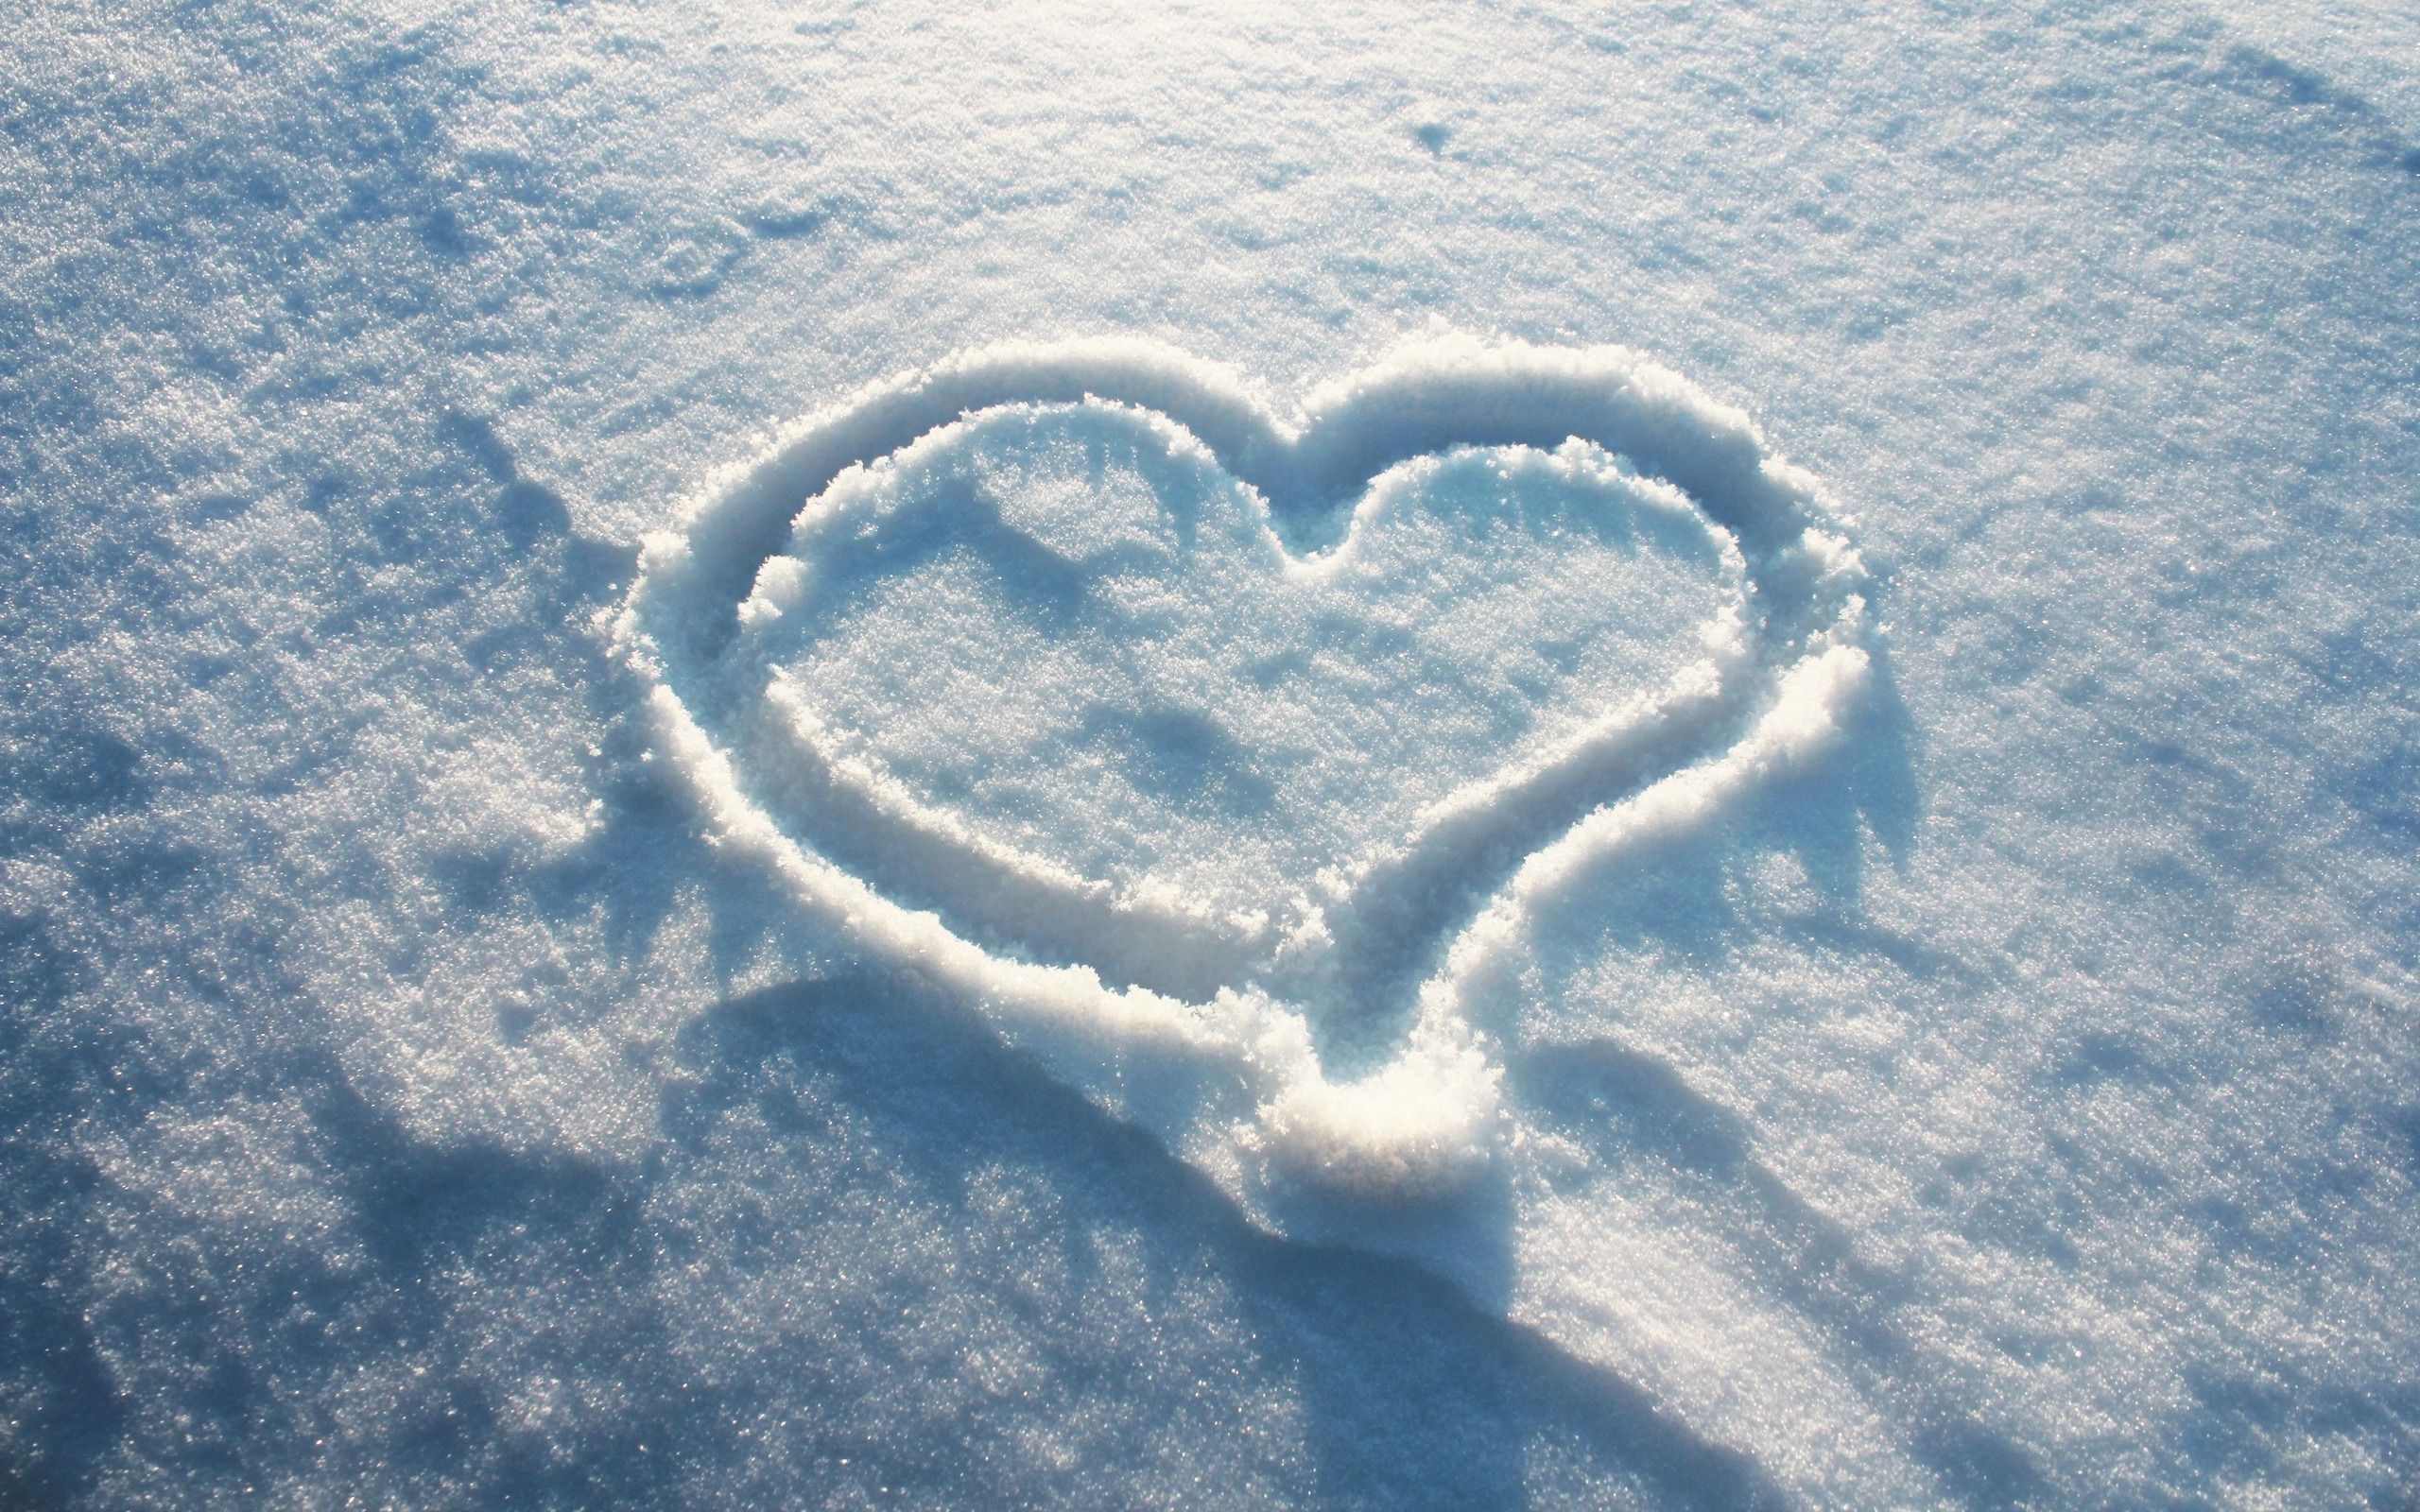 52596d301897fc7b49f9_7004968-love-heart-on-snow.jpg